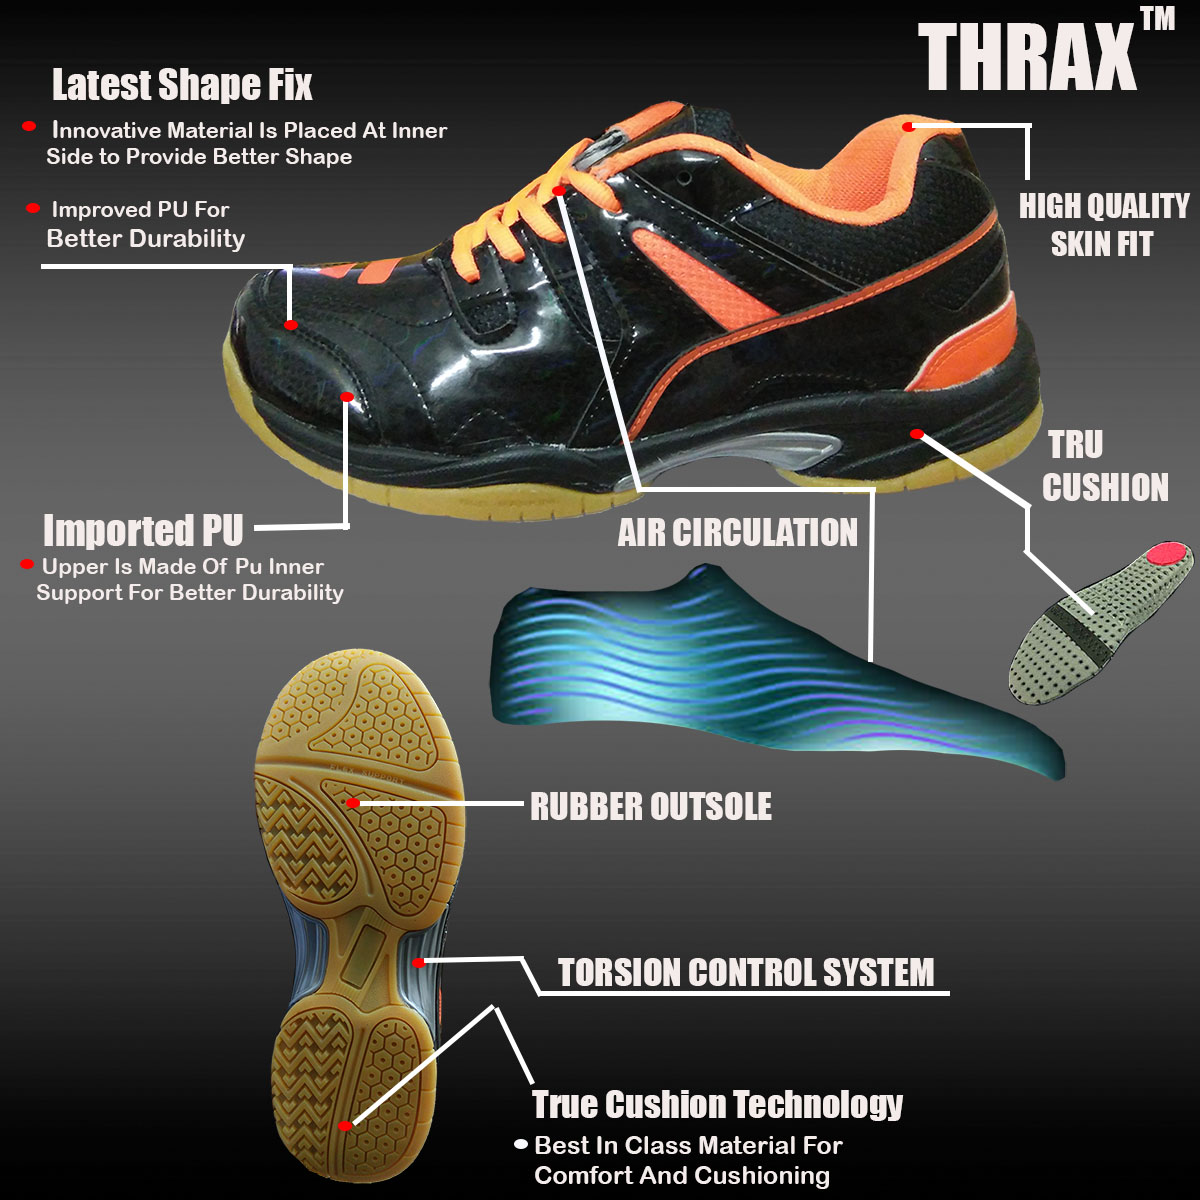 THRAX_FURIOUS_SHOES_TECHNOLOGY_BLACK.jpg